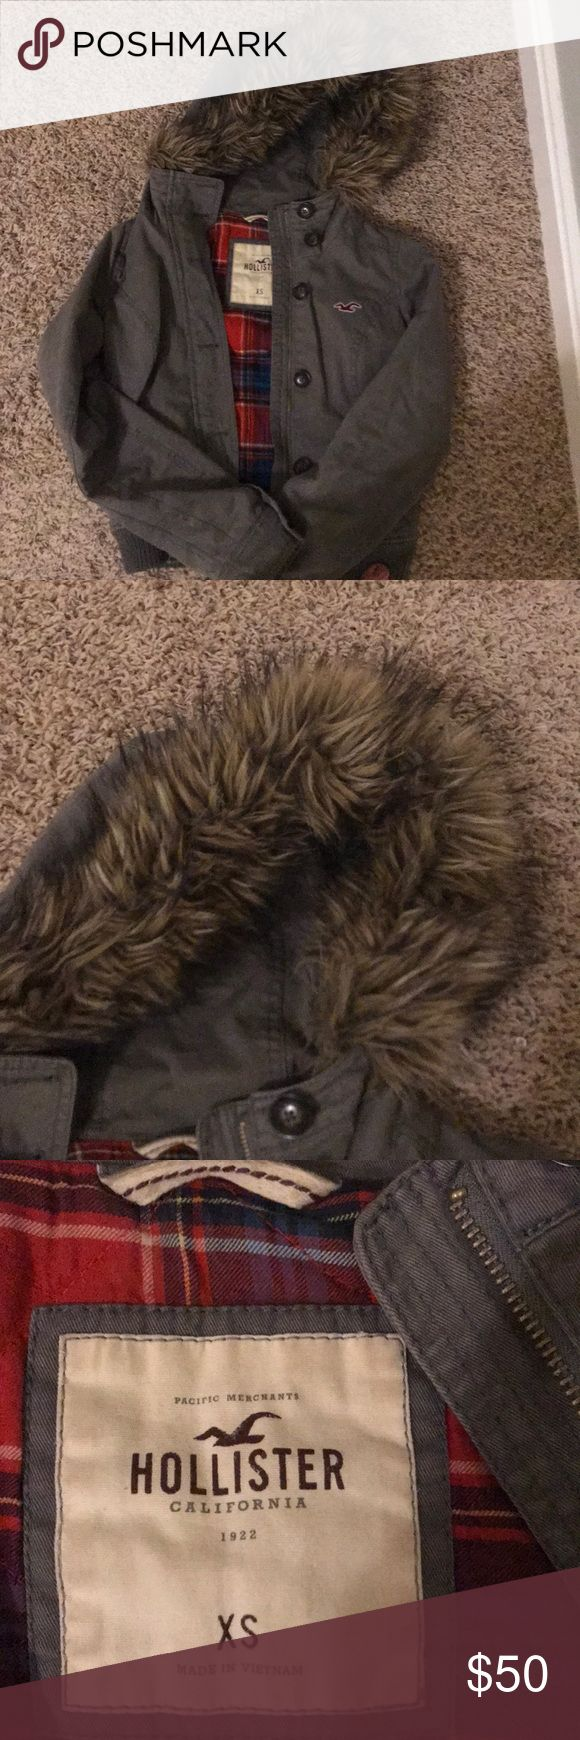 Hollister coat Hollister, fur lined hood coat (XS) really warm. With plaid lining. Color is a grayish green Hollister Jackets & Coats